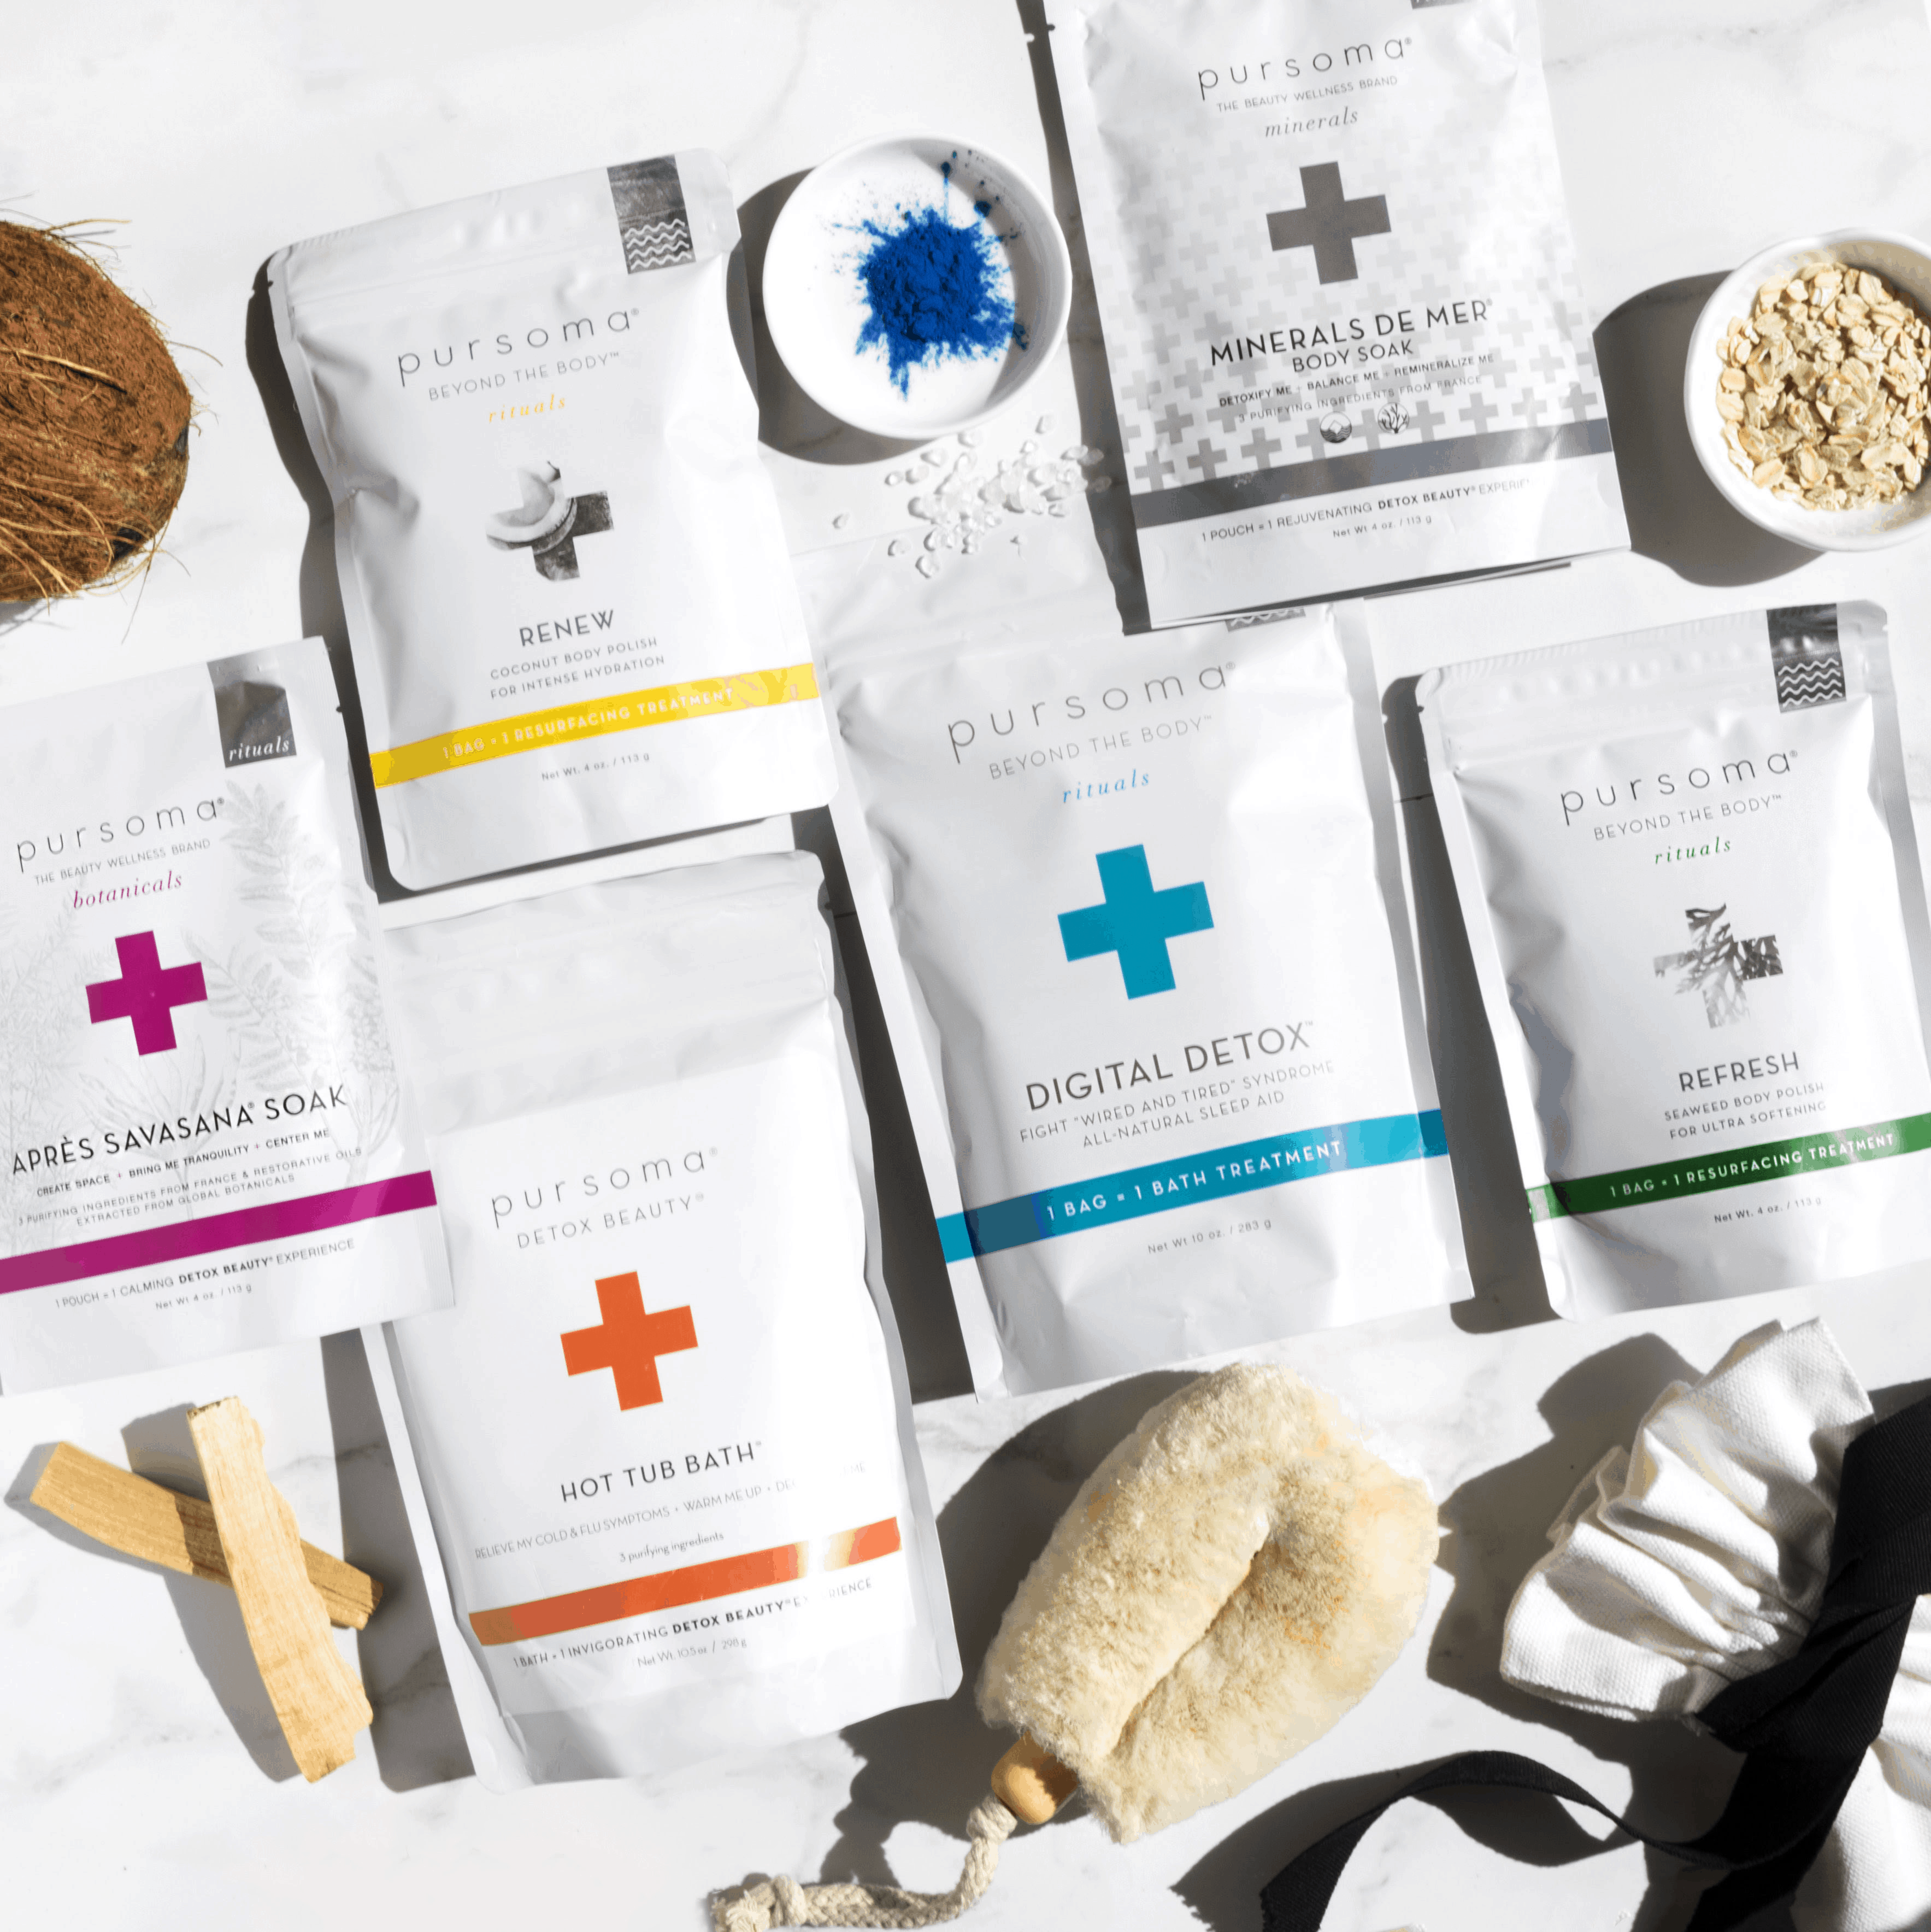 Beauty Heroes Limited Edition Wellness Discovery Box by Pursoma Available Now + Full Spoilers!